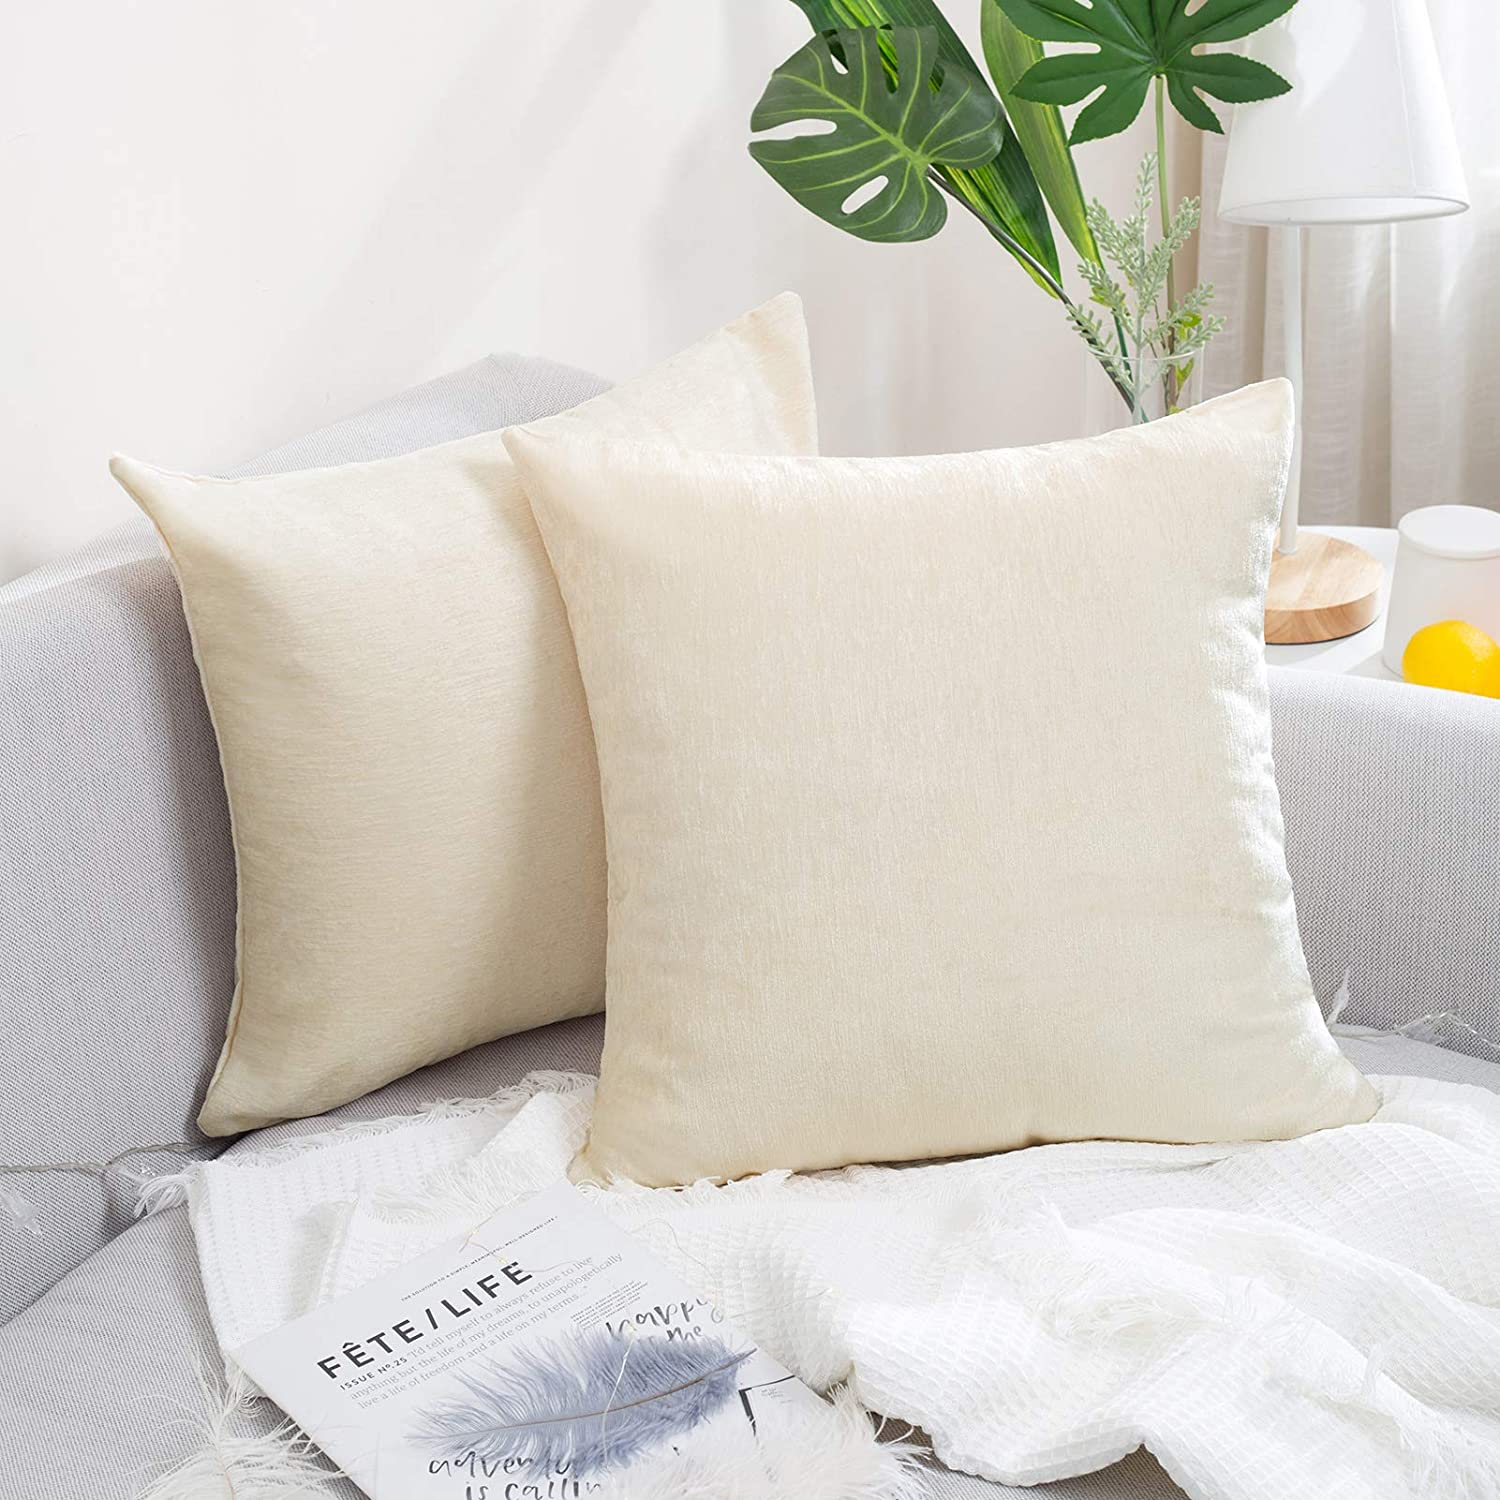 AVOE Pack of 2 Chenille Throw Pillow Covers, Comfy Home Decorative Pillowcase Throw Cushion Case for Couch Sofa Bedroom (20x20 Inch, Cream White)